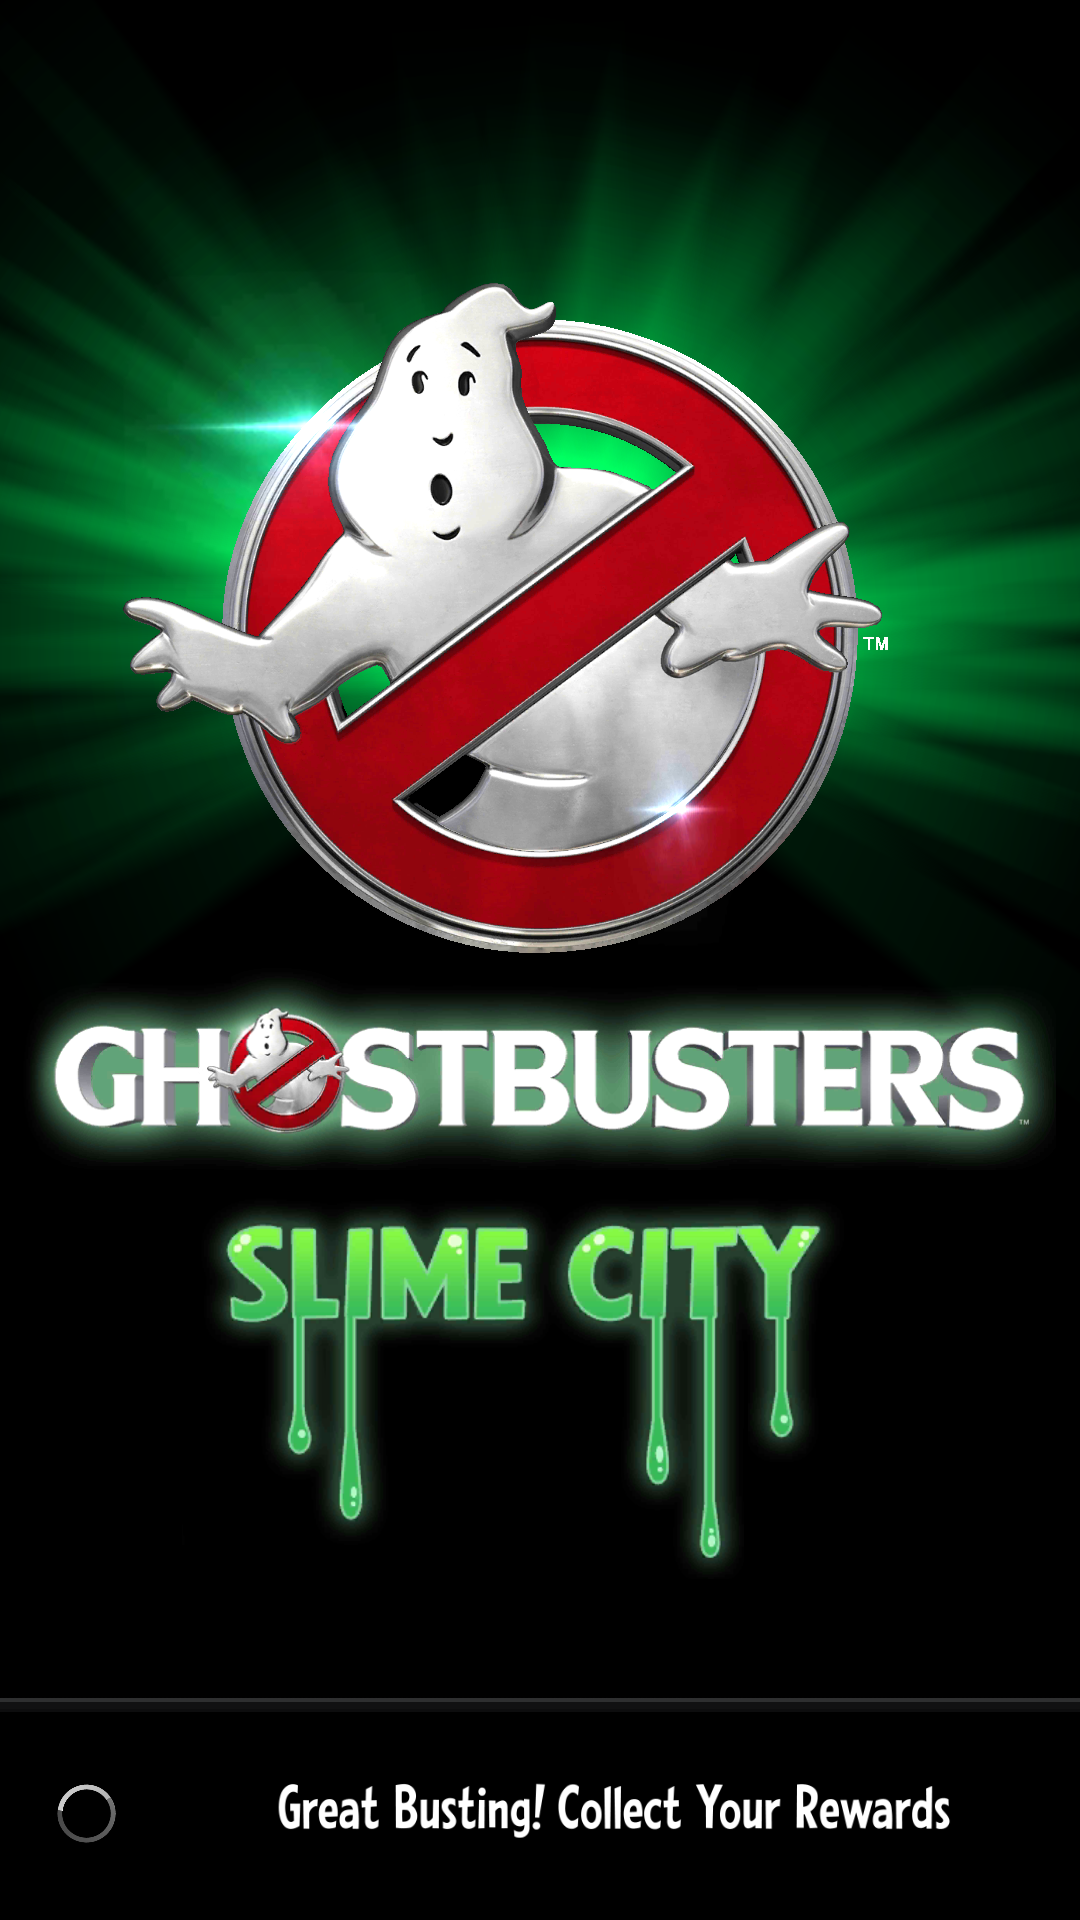 androidアプリ Ghostbusters : Slime City(ゴーストバスターズ)攻略スクリーンショット1